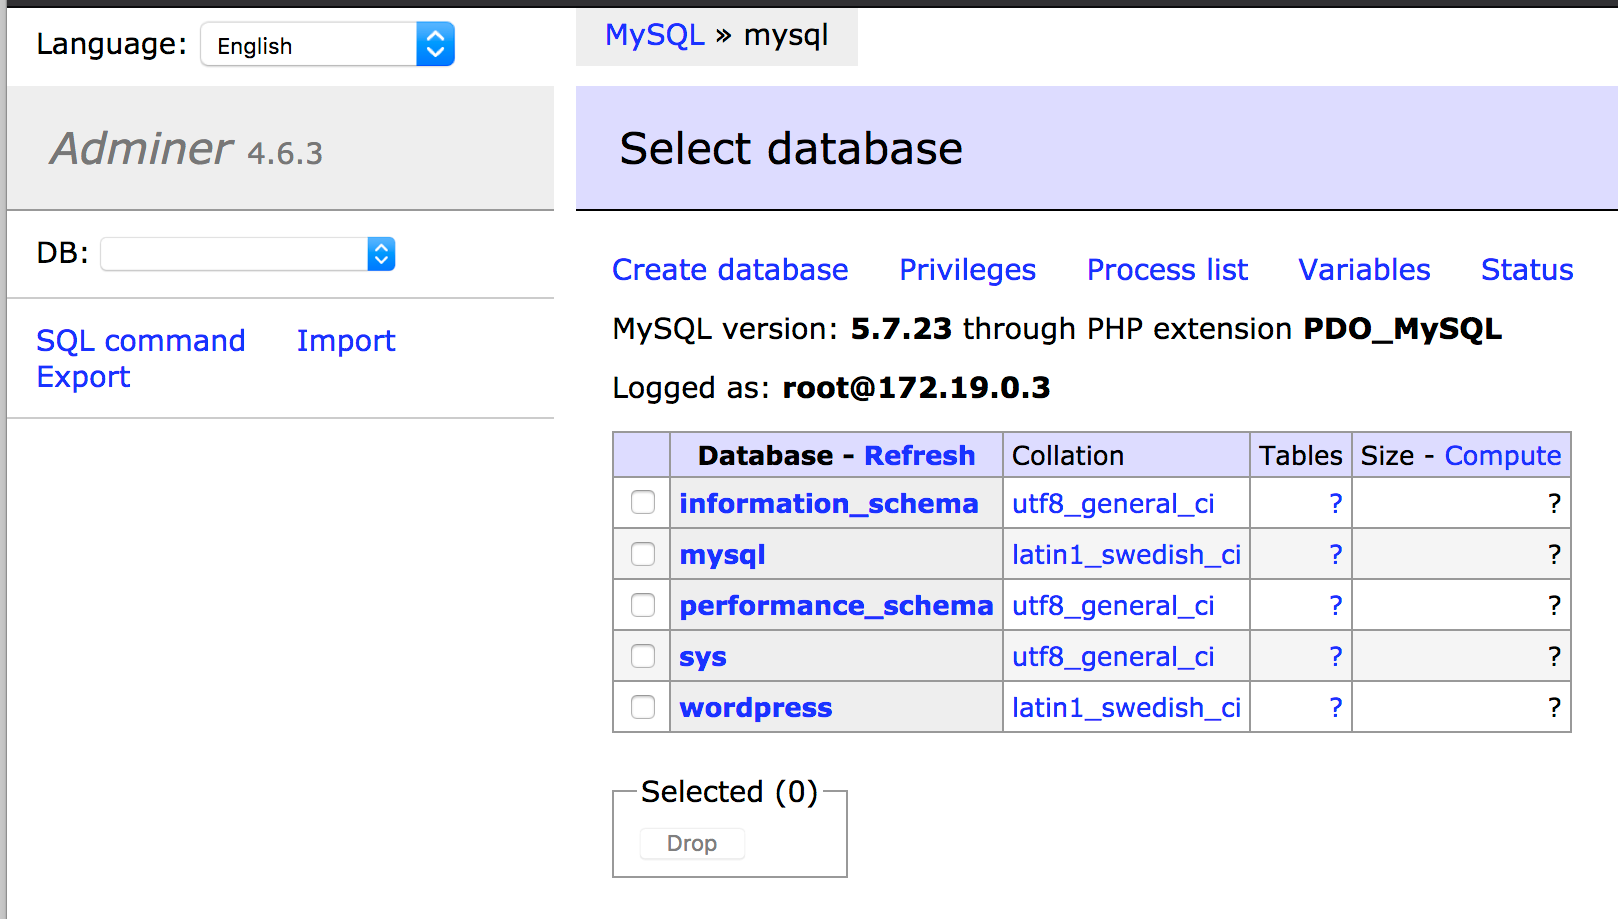 Adminer connected to the MySQL database